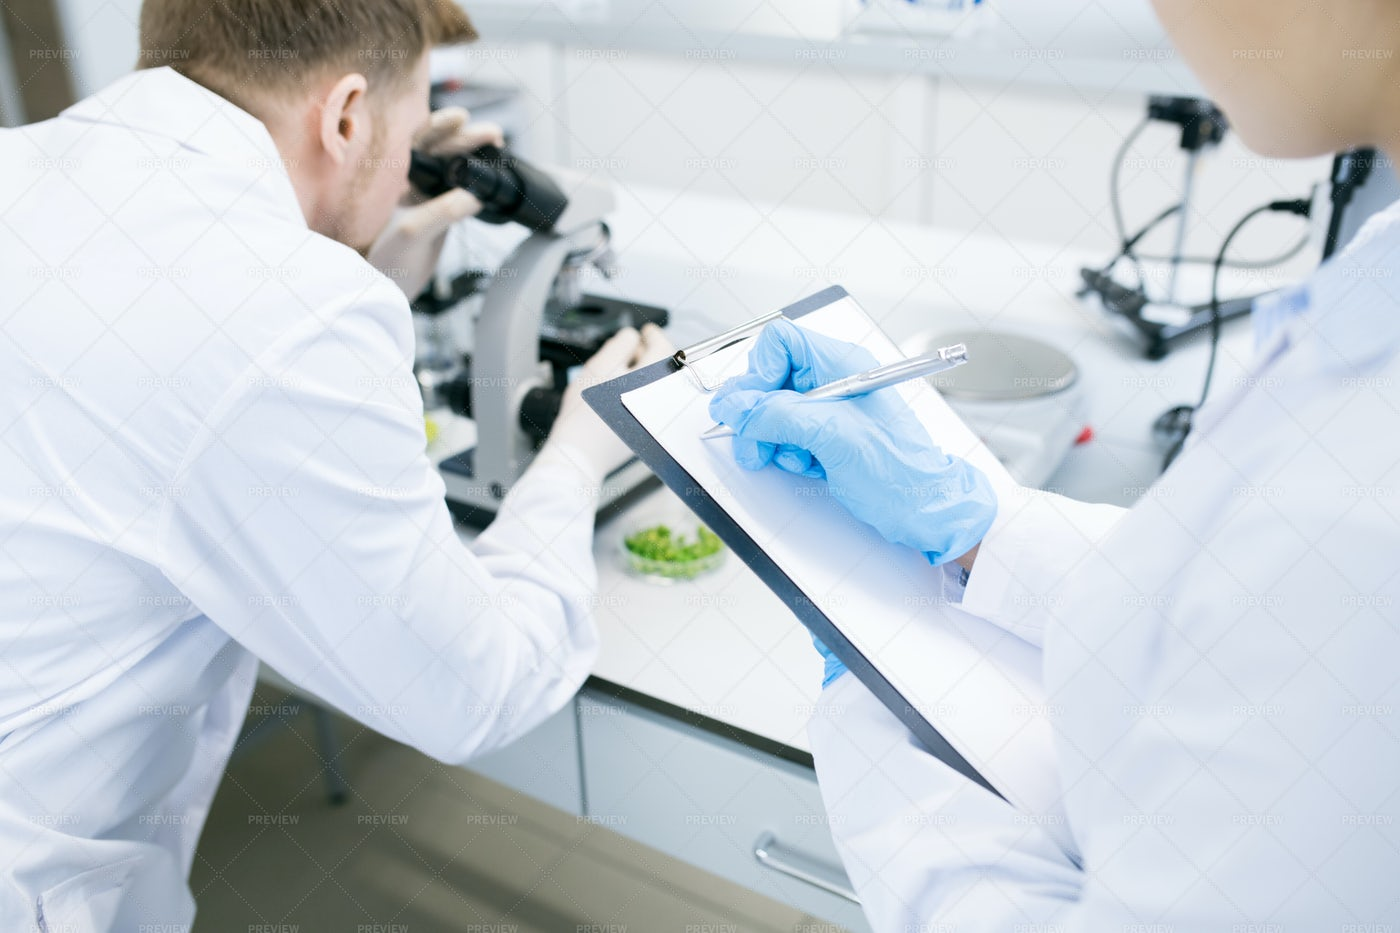 Scientists Writing Results Of...: Stock Photos